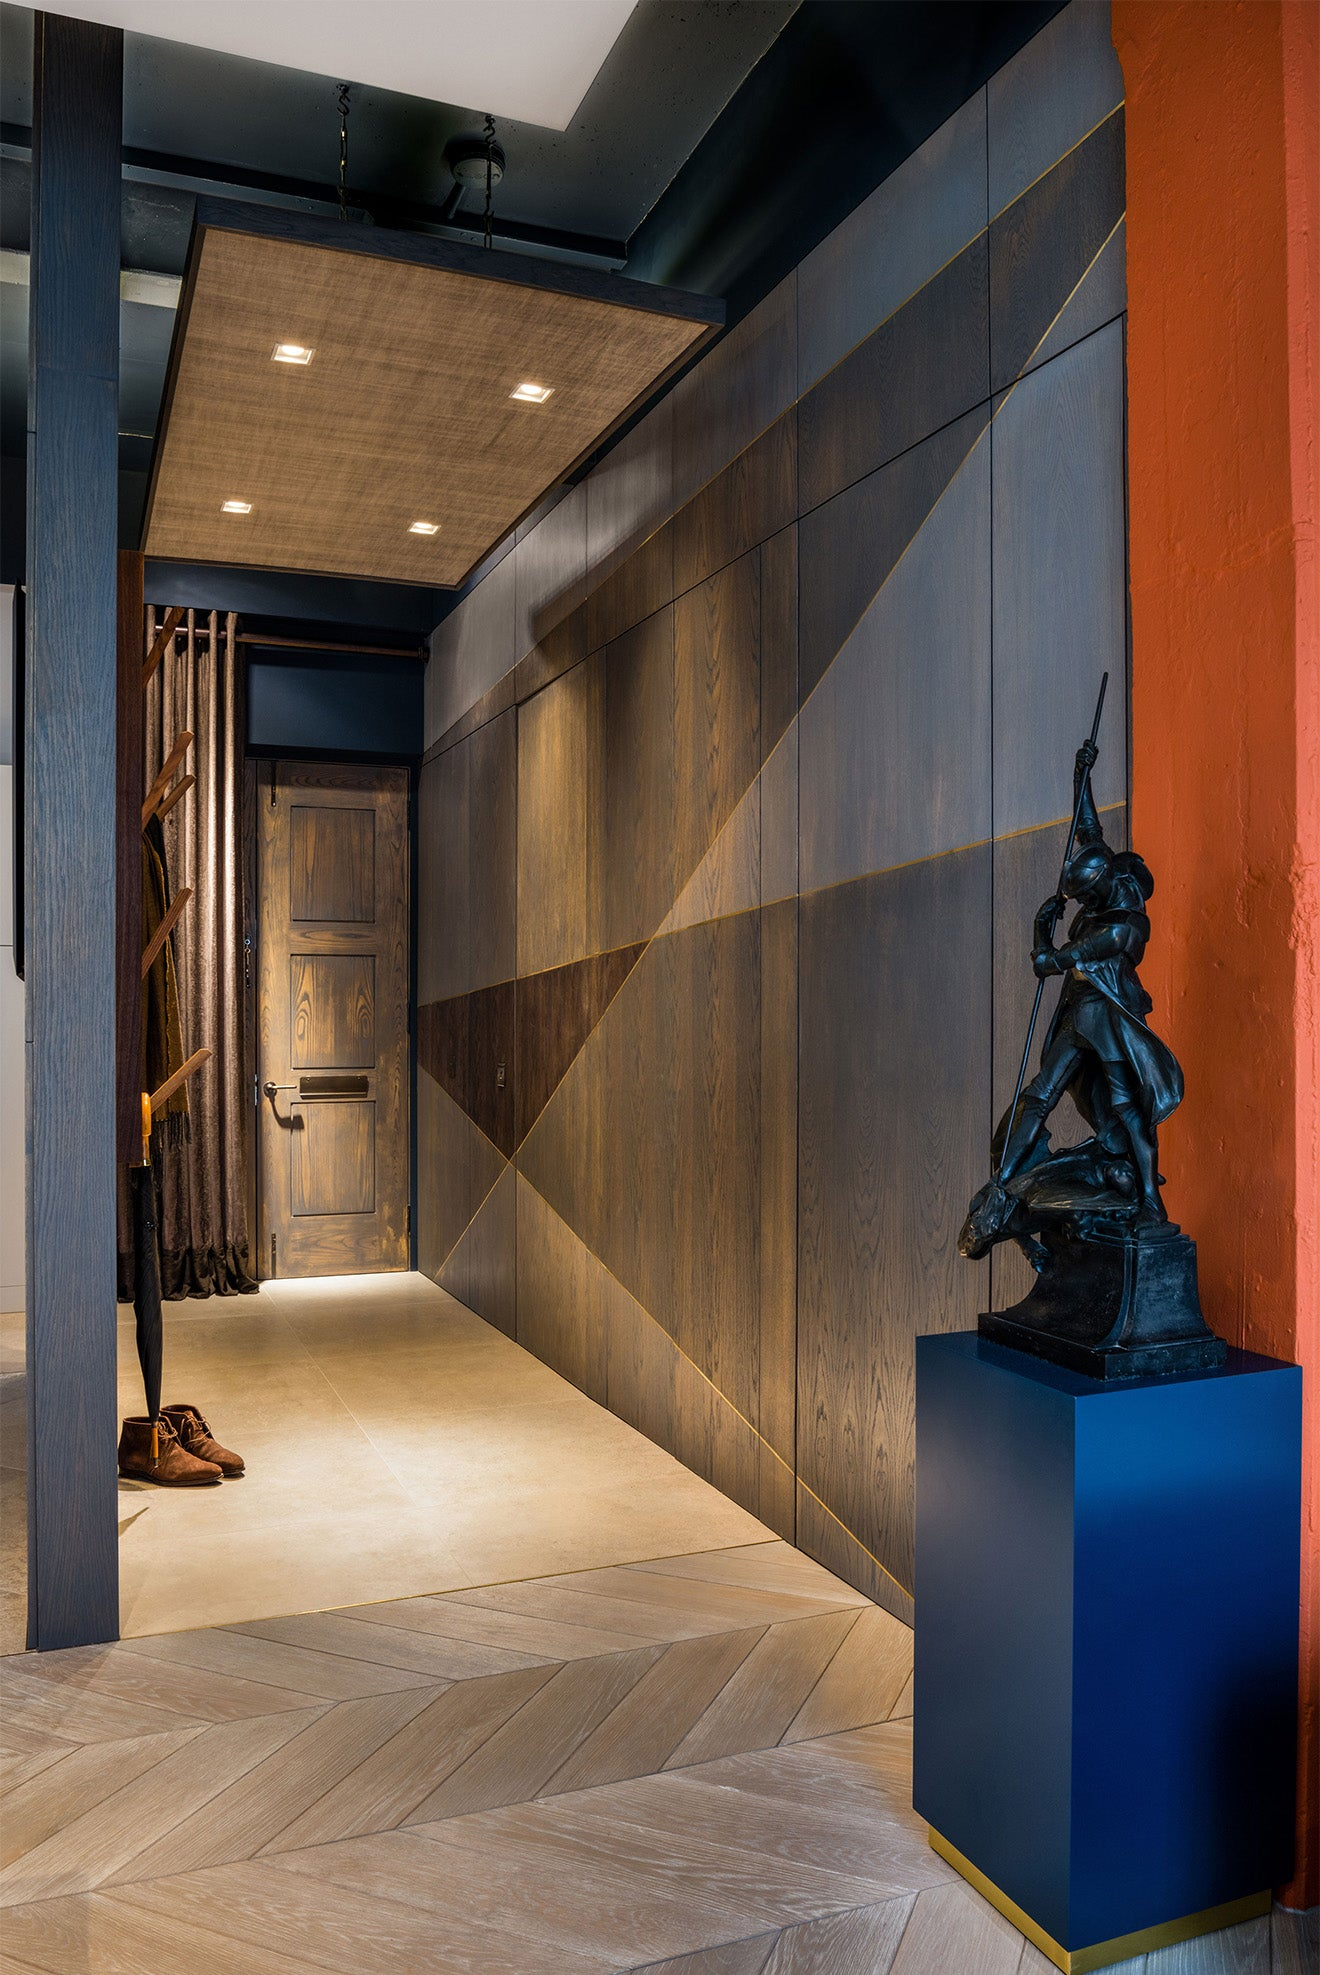 Luxury interior design hallway by Daniel Hopwood with orange and blue detailing